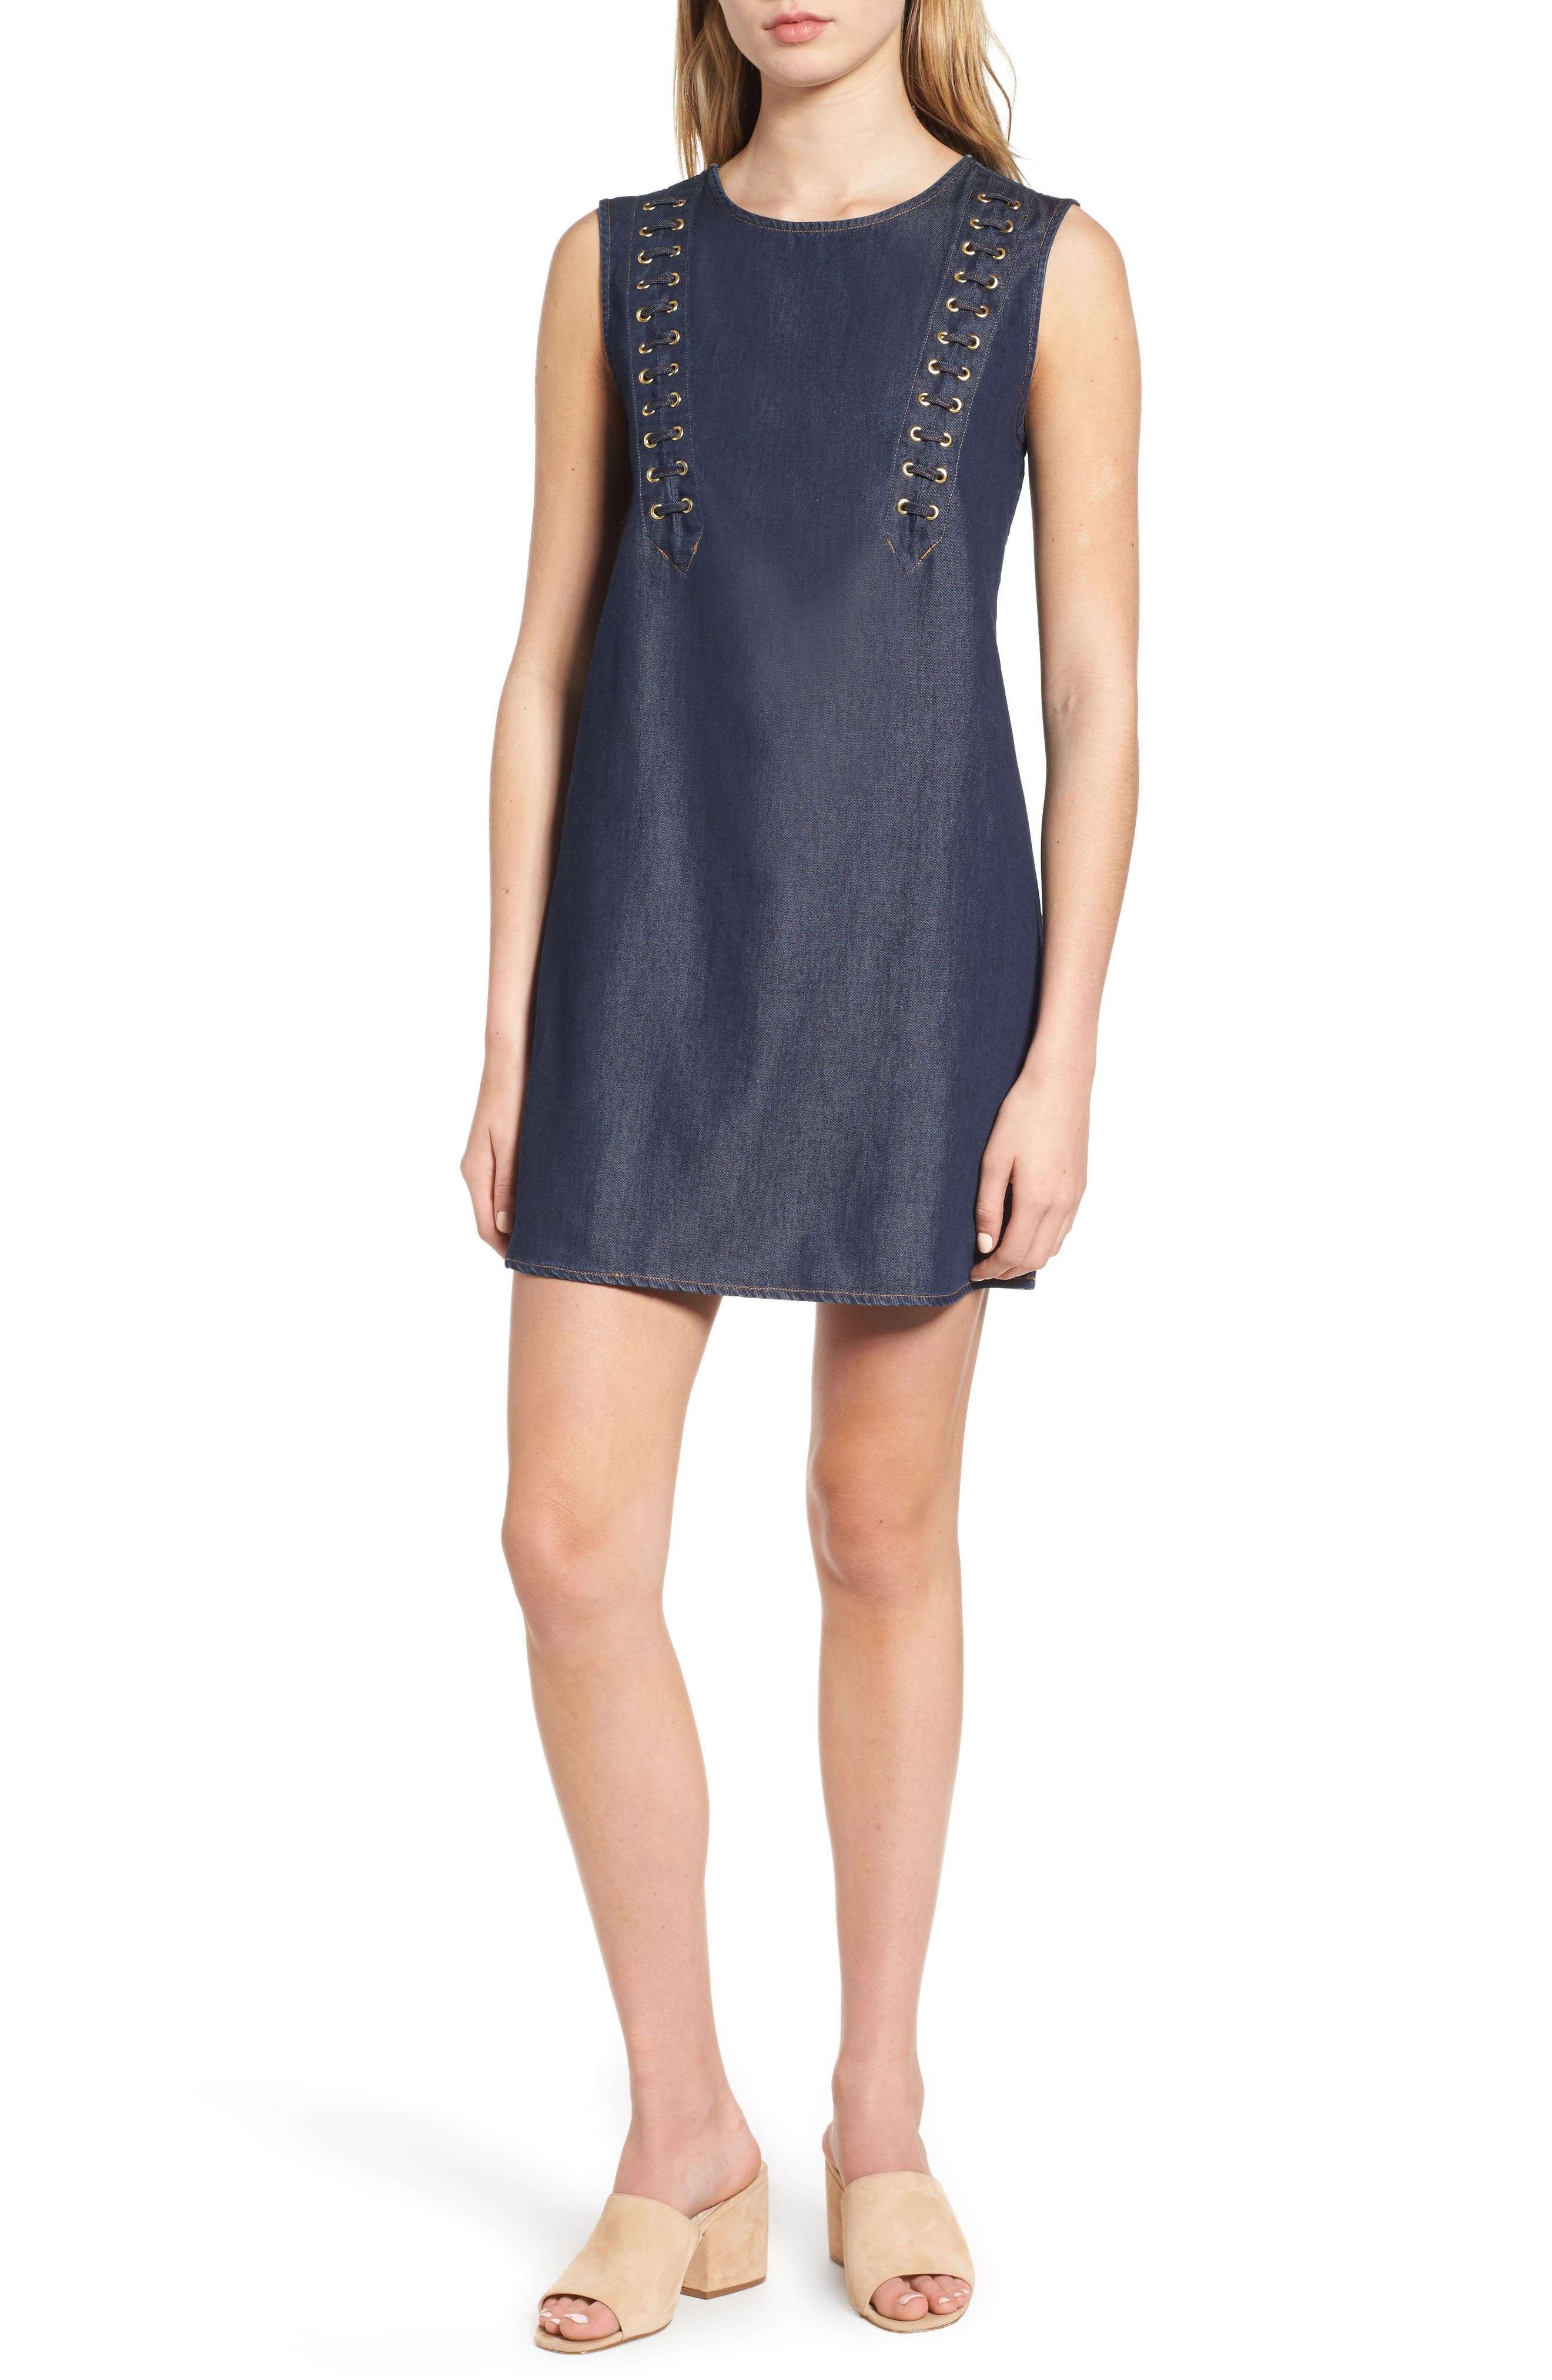 True Religion Brand Jeans Lace-Up Dress